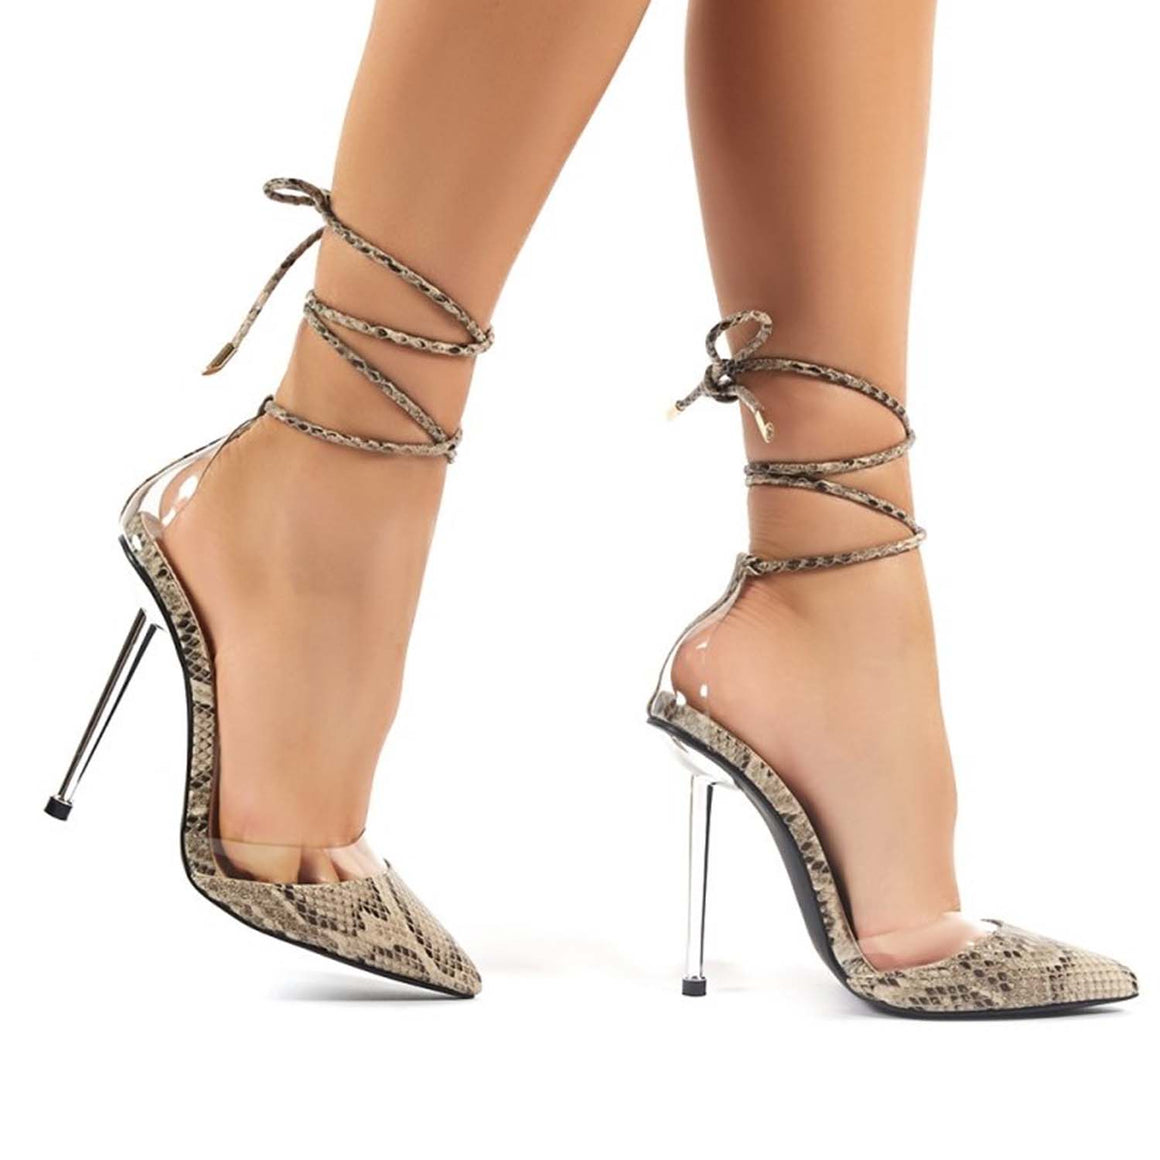 PUBLIC DESIRE ENVEE SNAKE LACE UP STILETTO